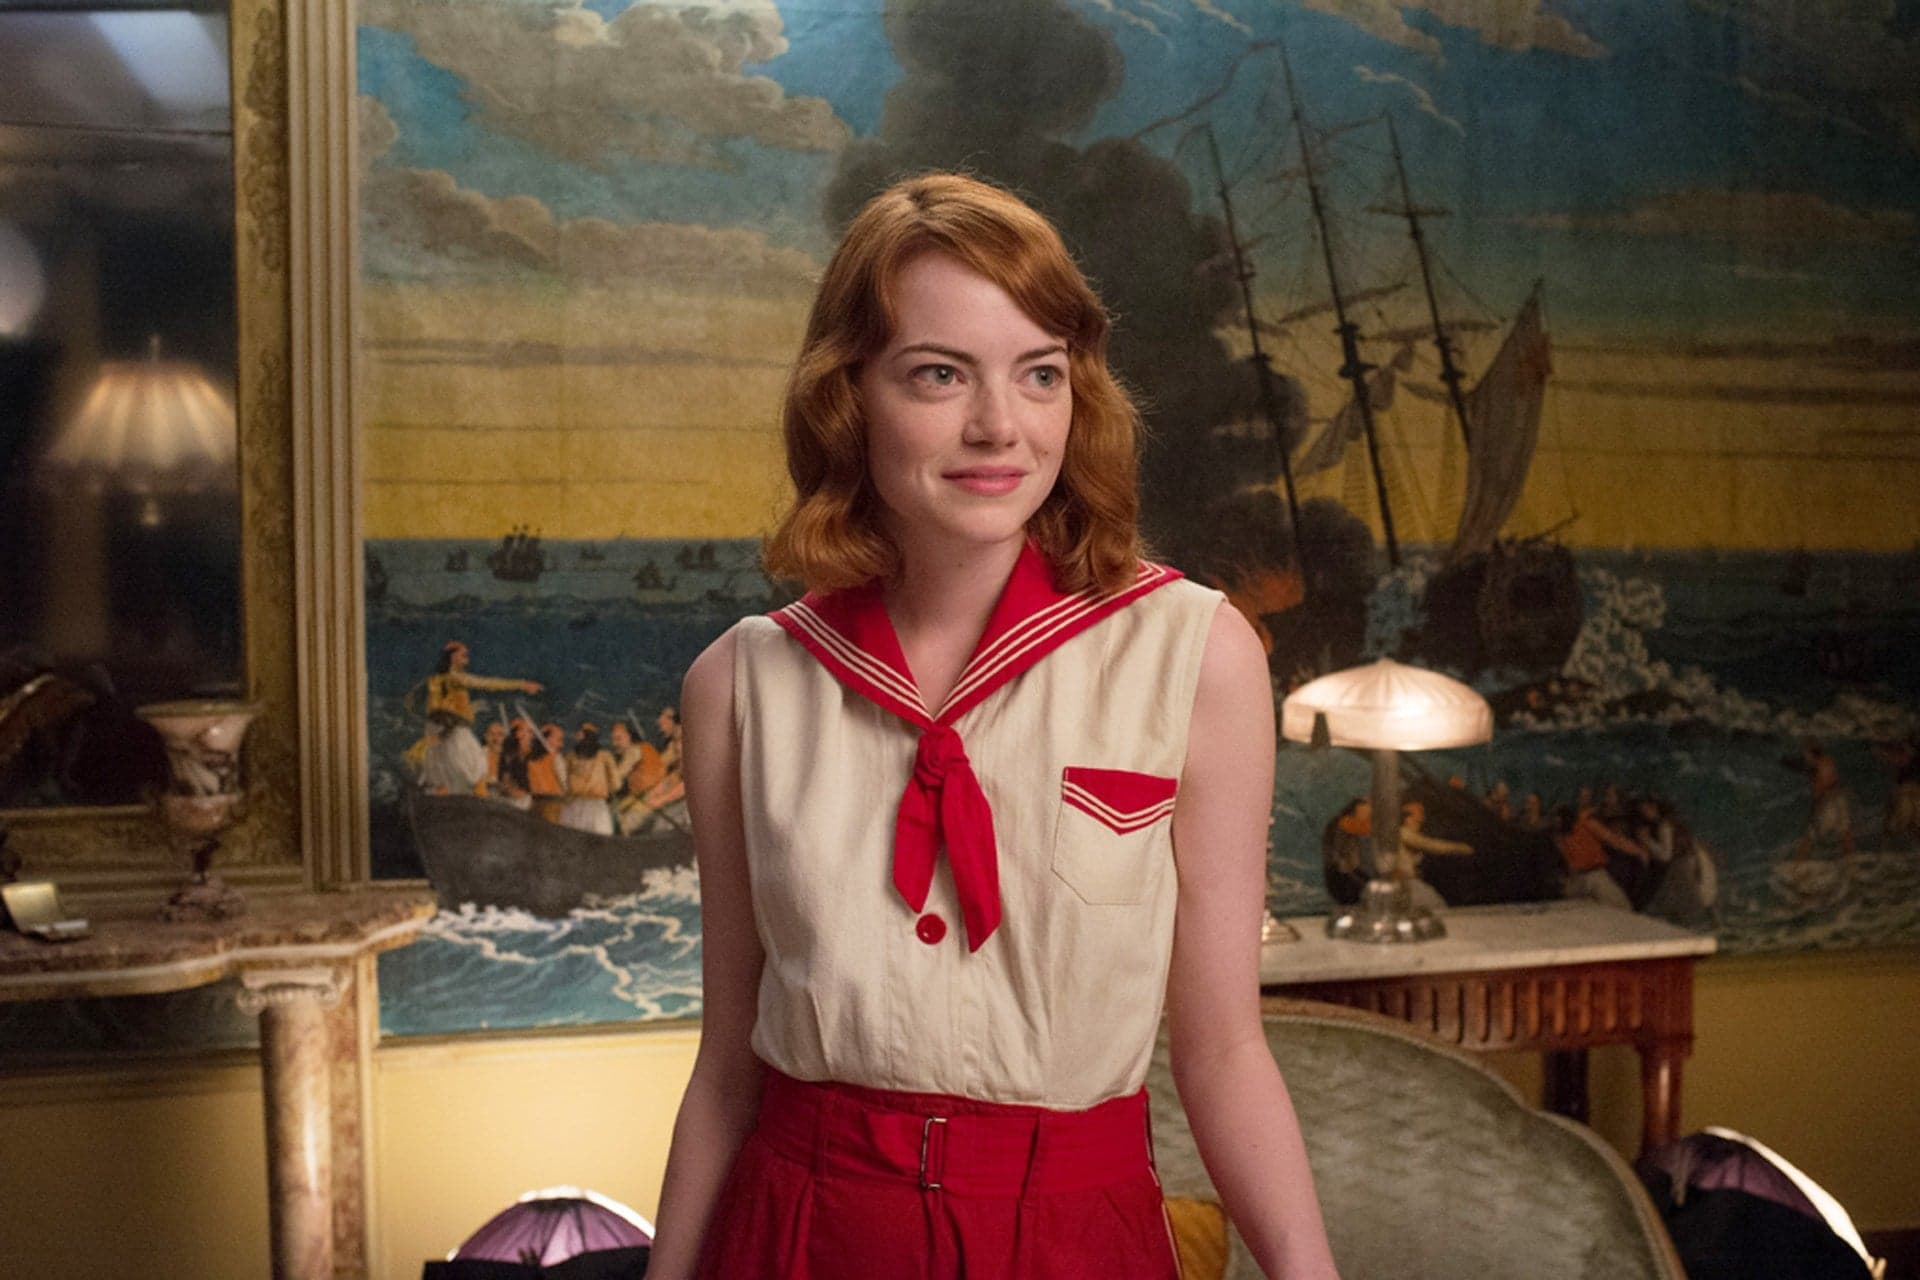 """Hold the phone: Emma Stone once auditioned to be on Nickelodeon's """"All That"""" (but didn't get the part)"""